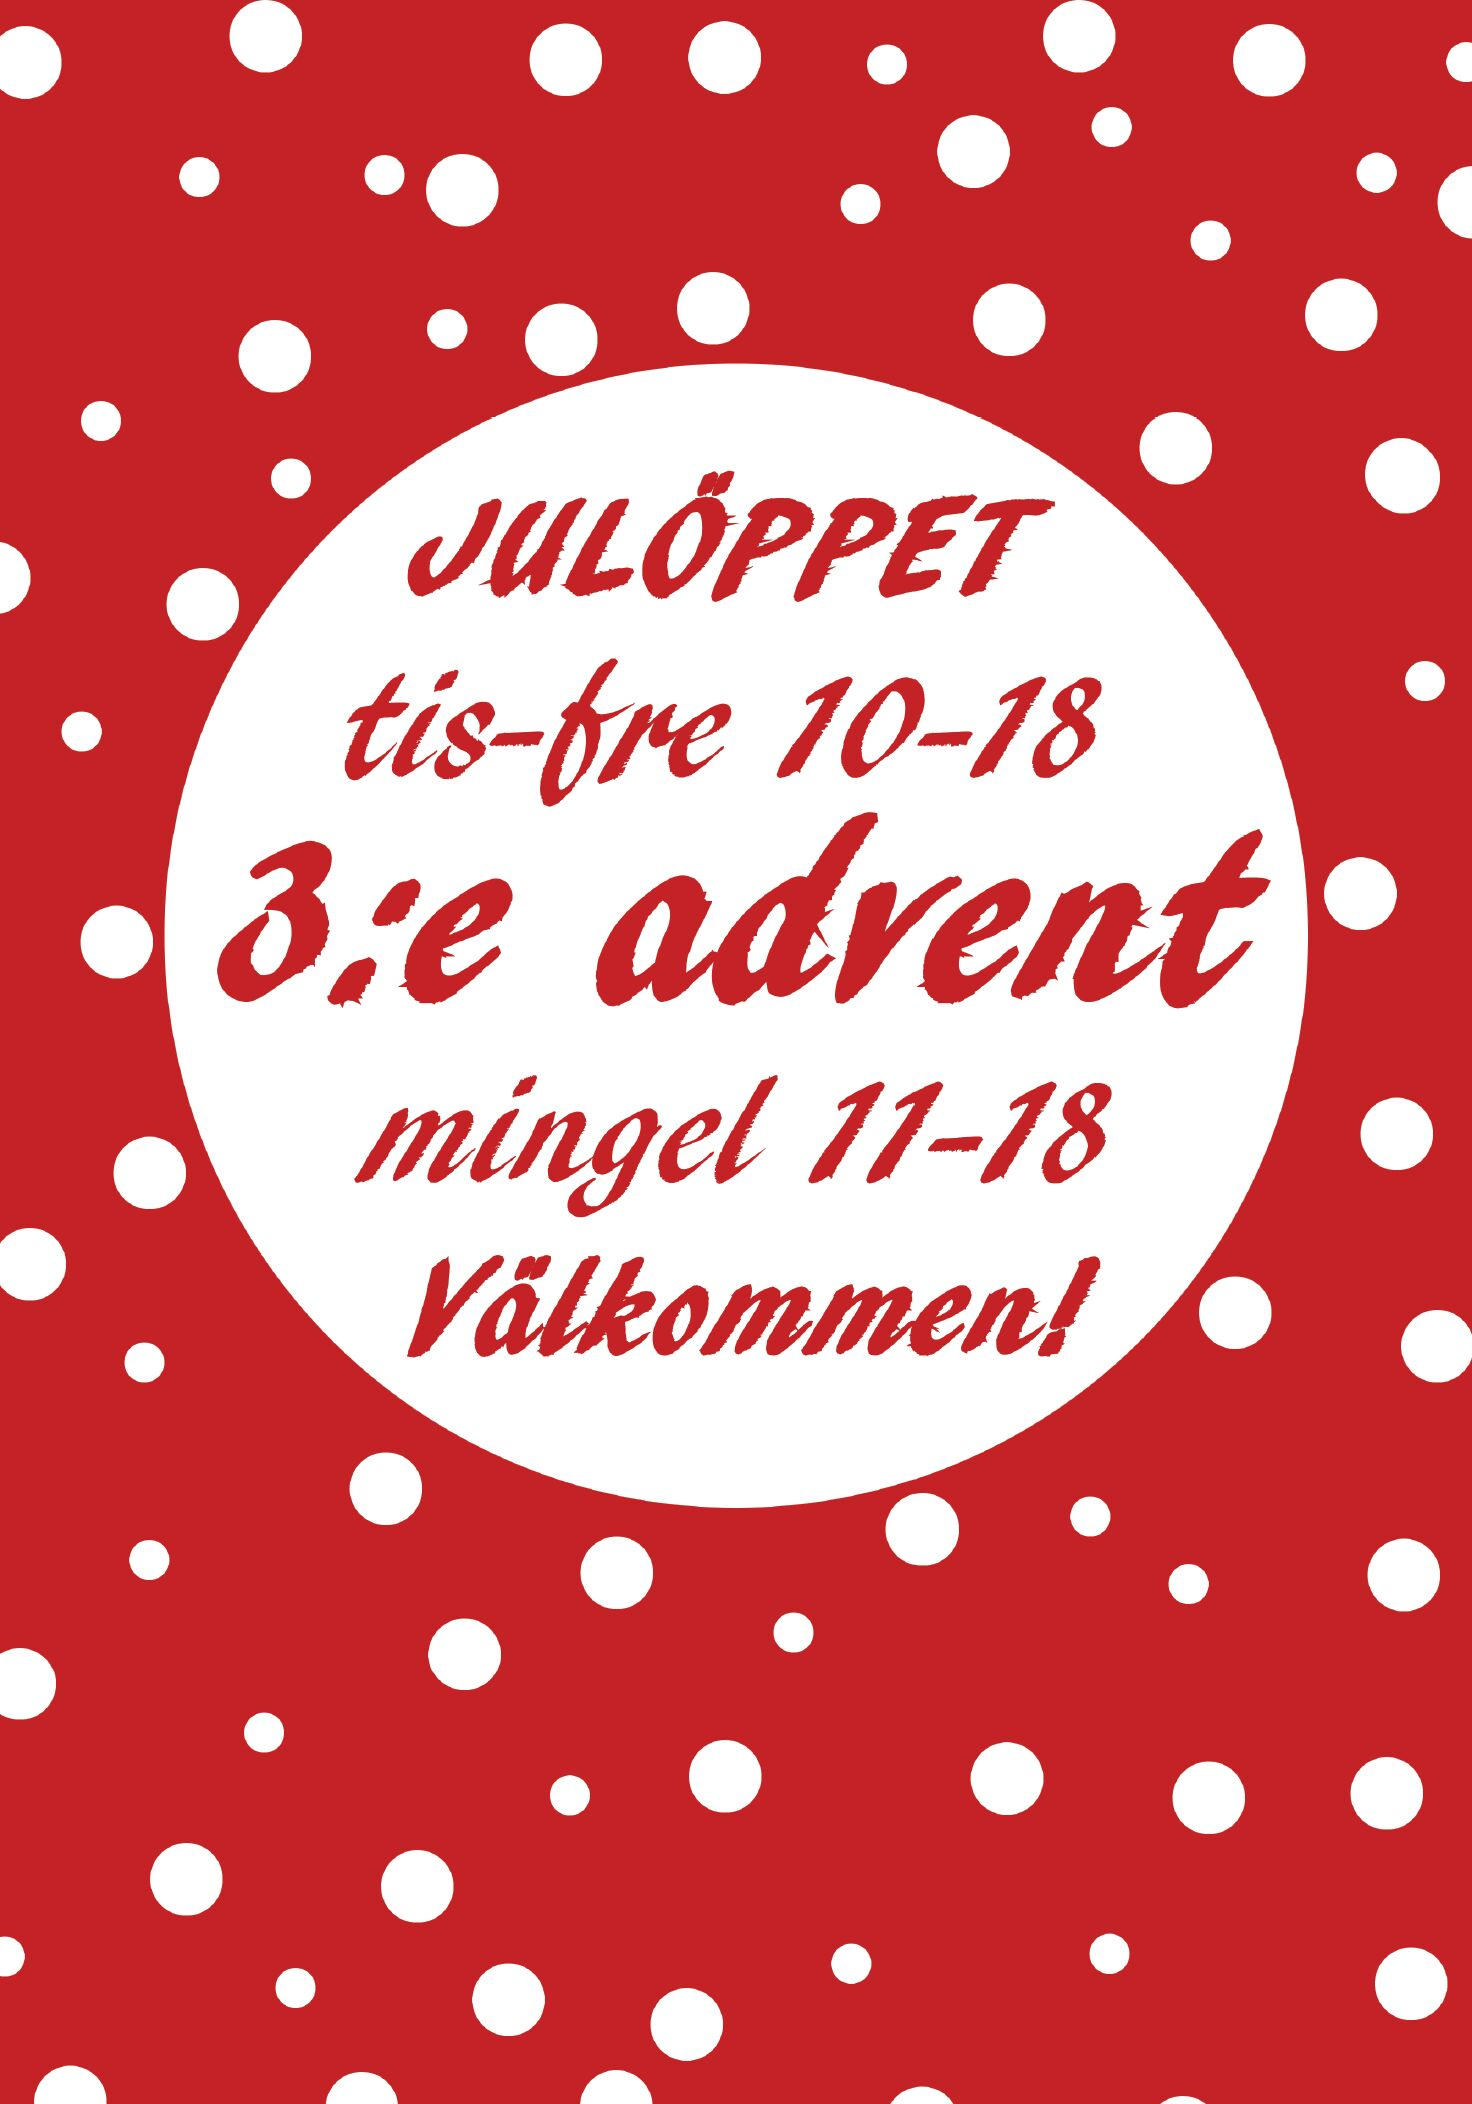 mingel 3:e advent